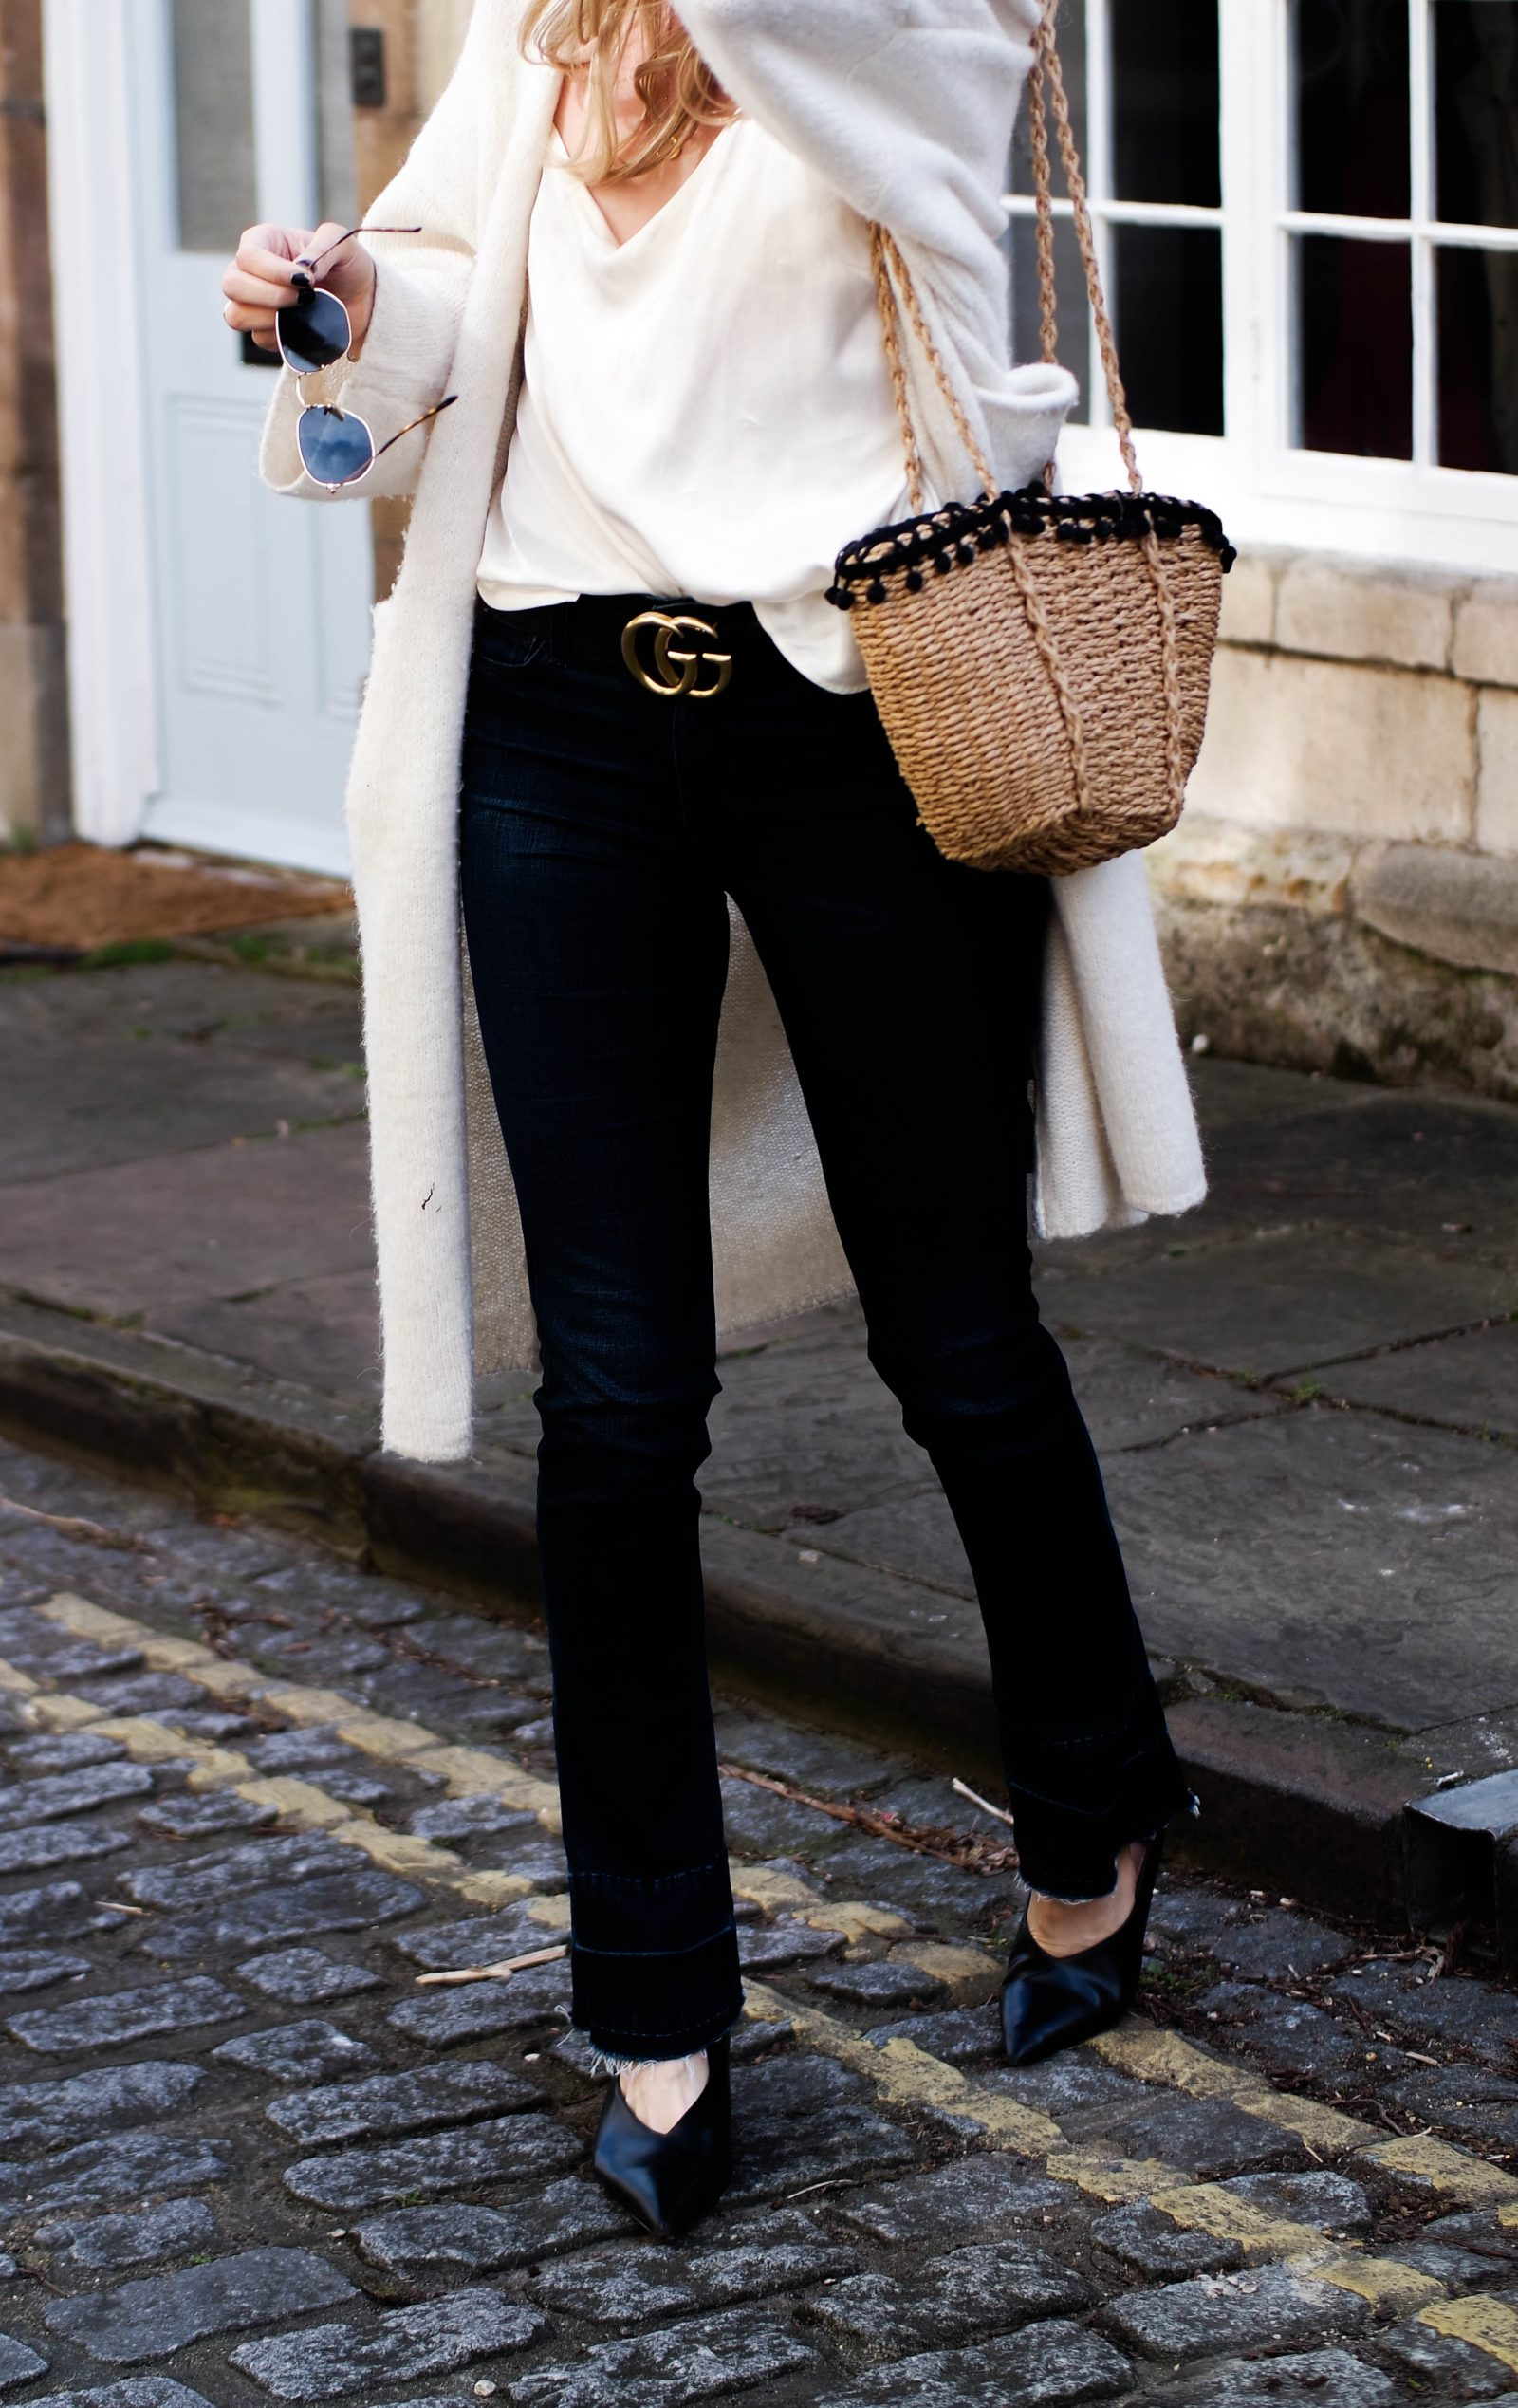 The New Denim - How To Wear Flares - Gucci Statement Belt